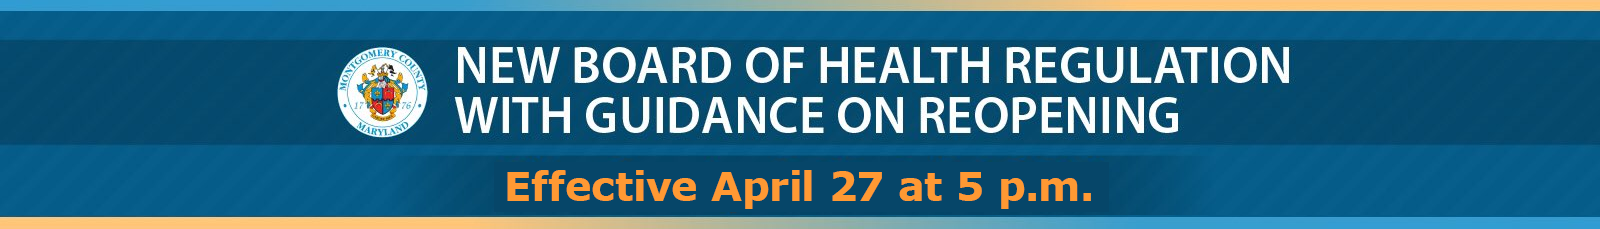 text of new board of health regulationwith guidance on reopening, effective April 27, at 5 p.m.